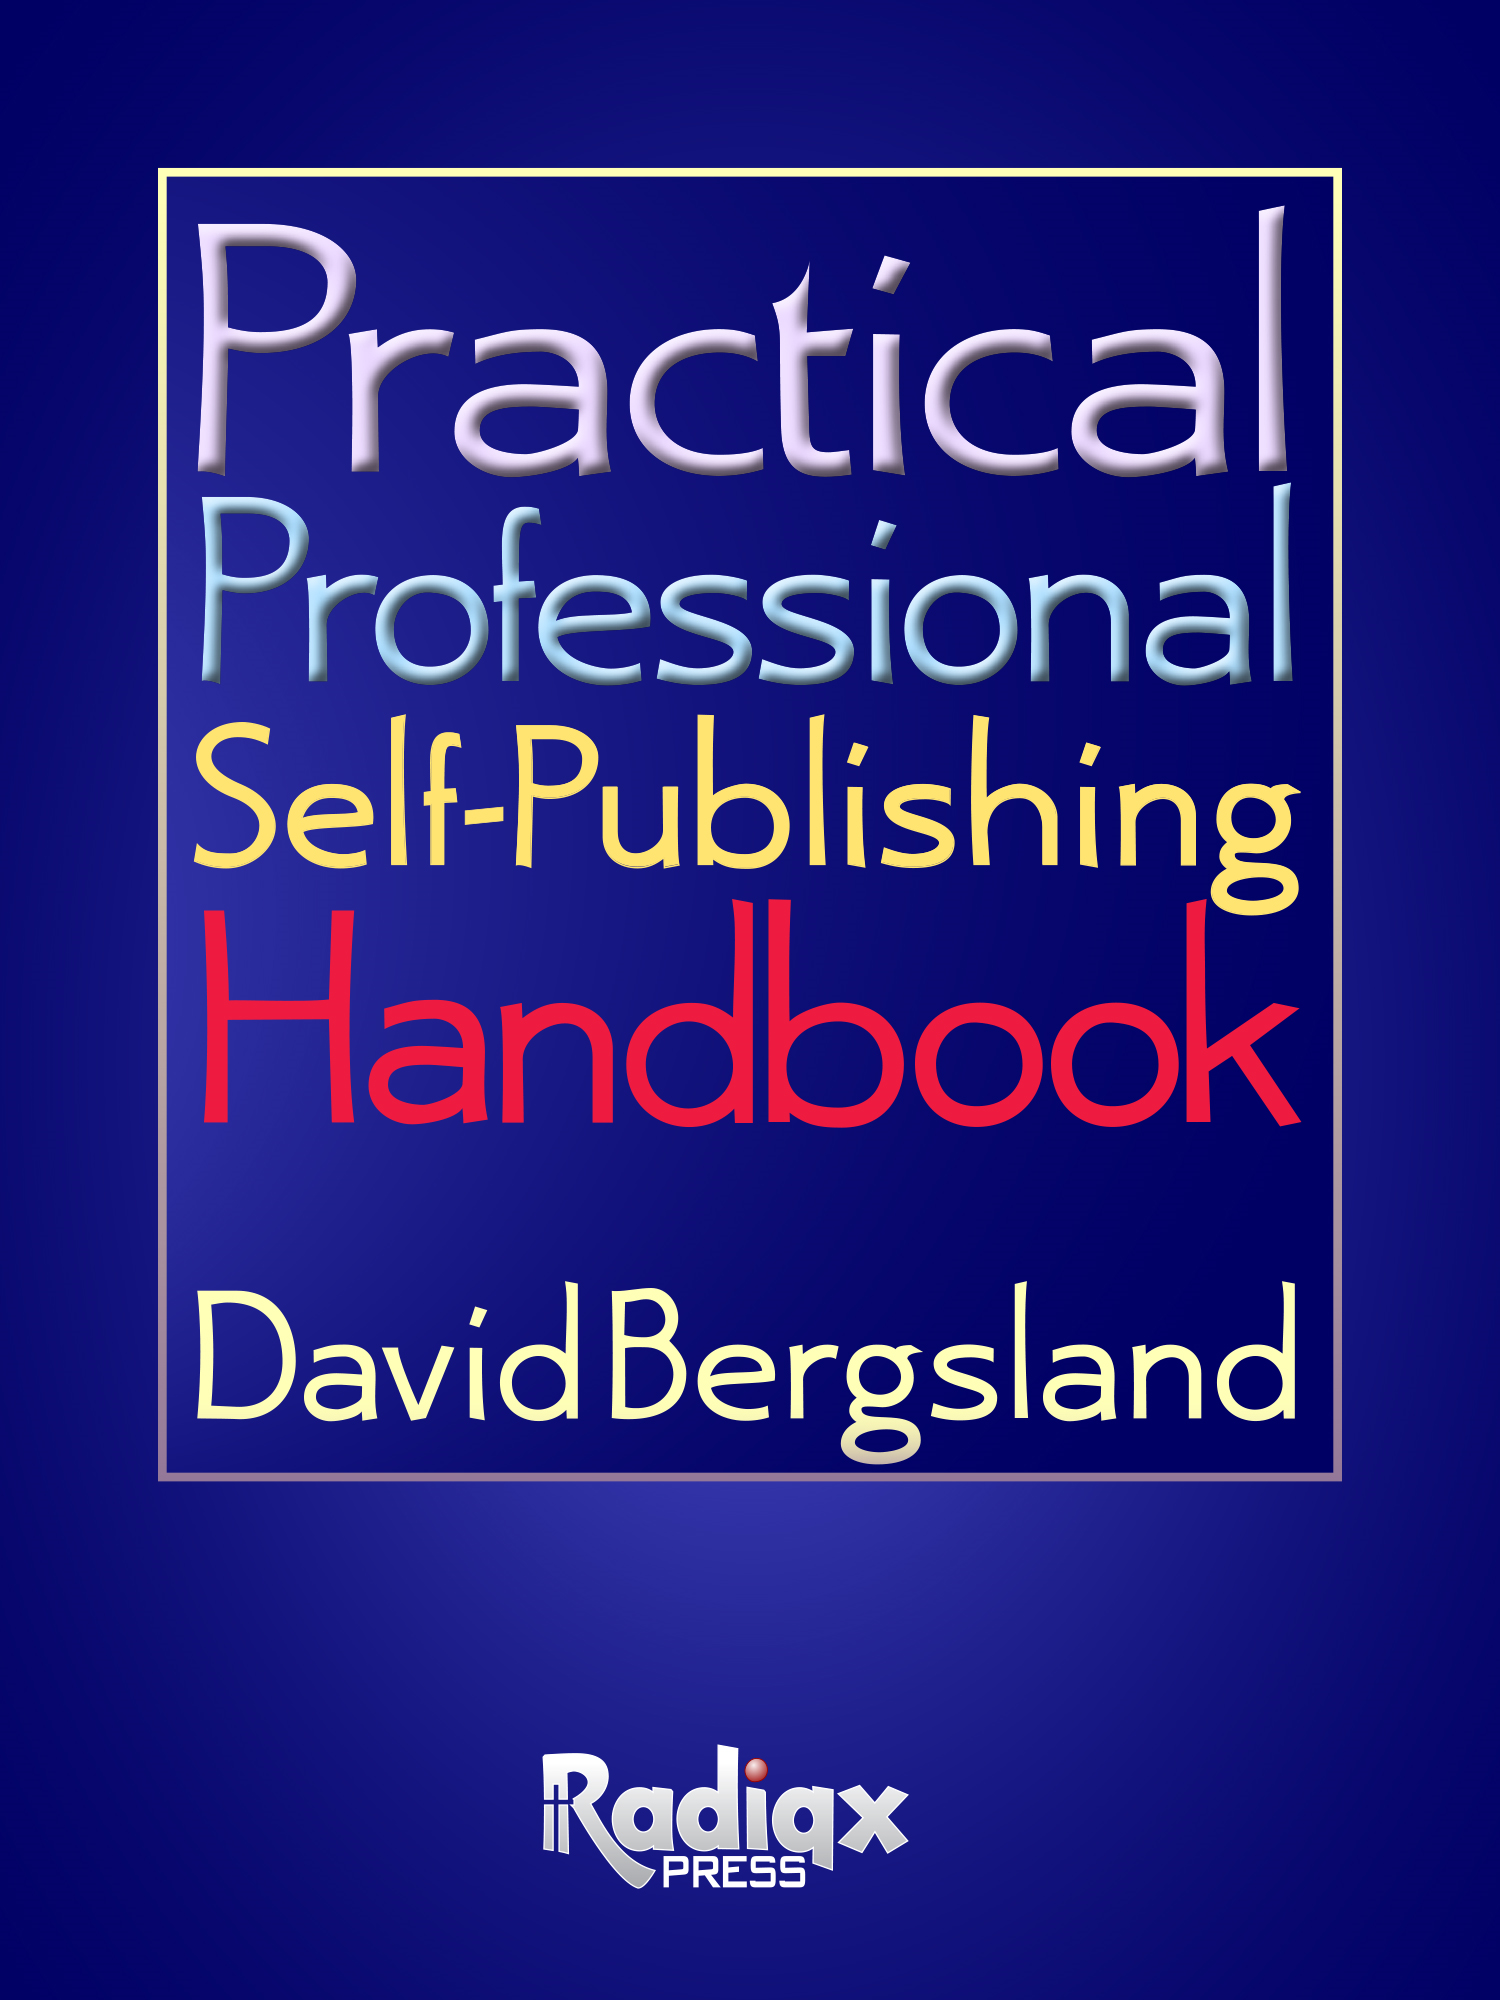 Practical Professional Self-Publishing Handbook